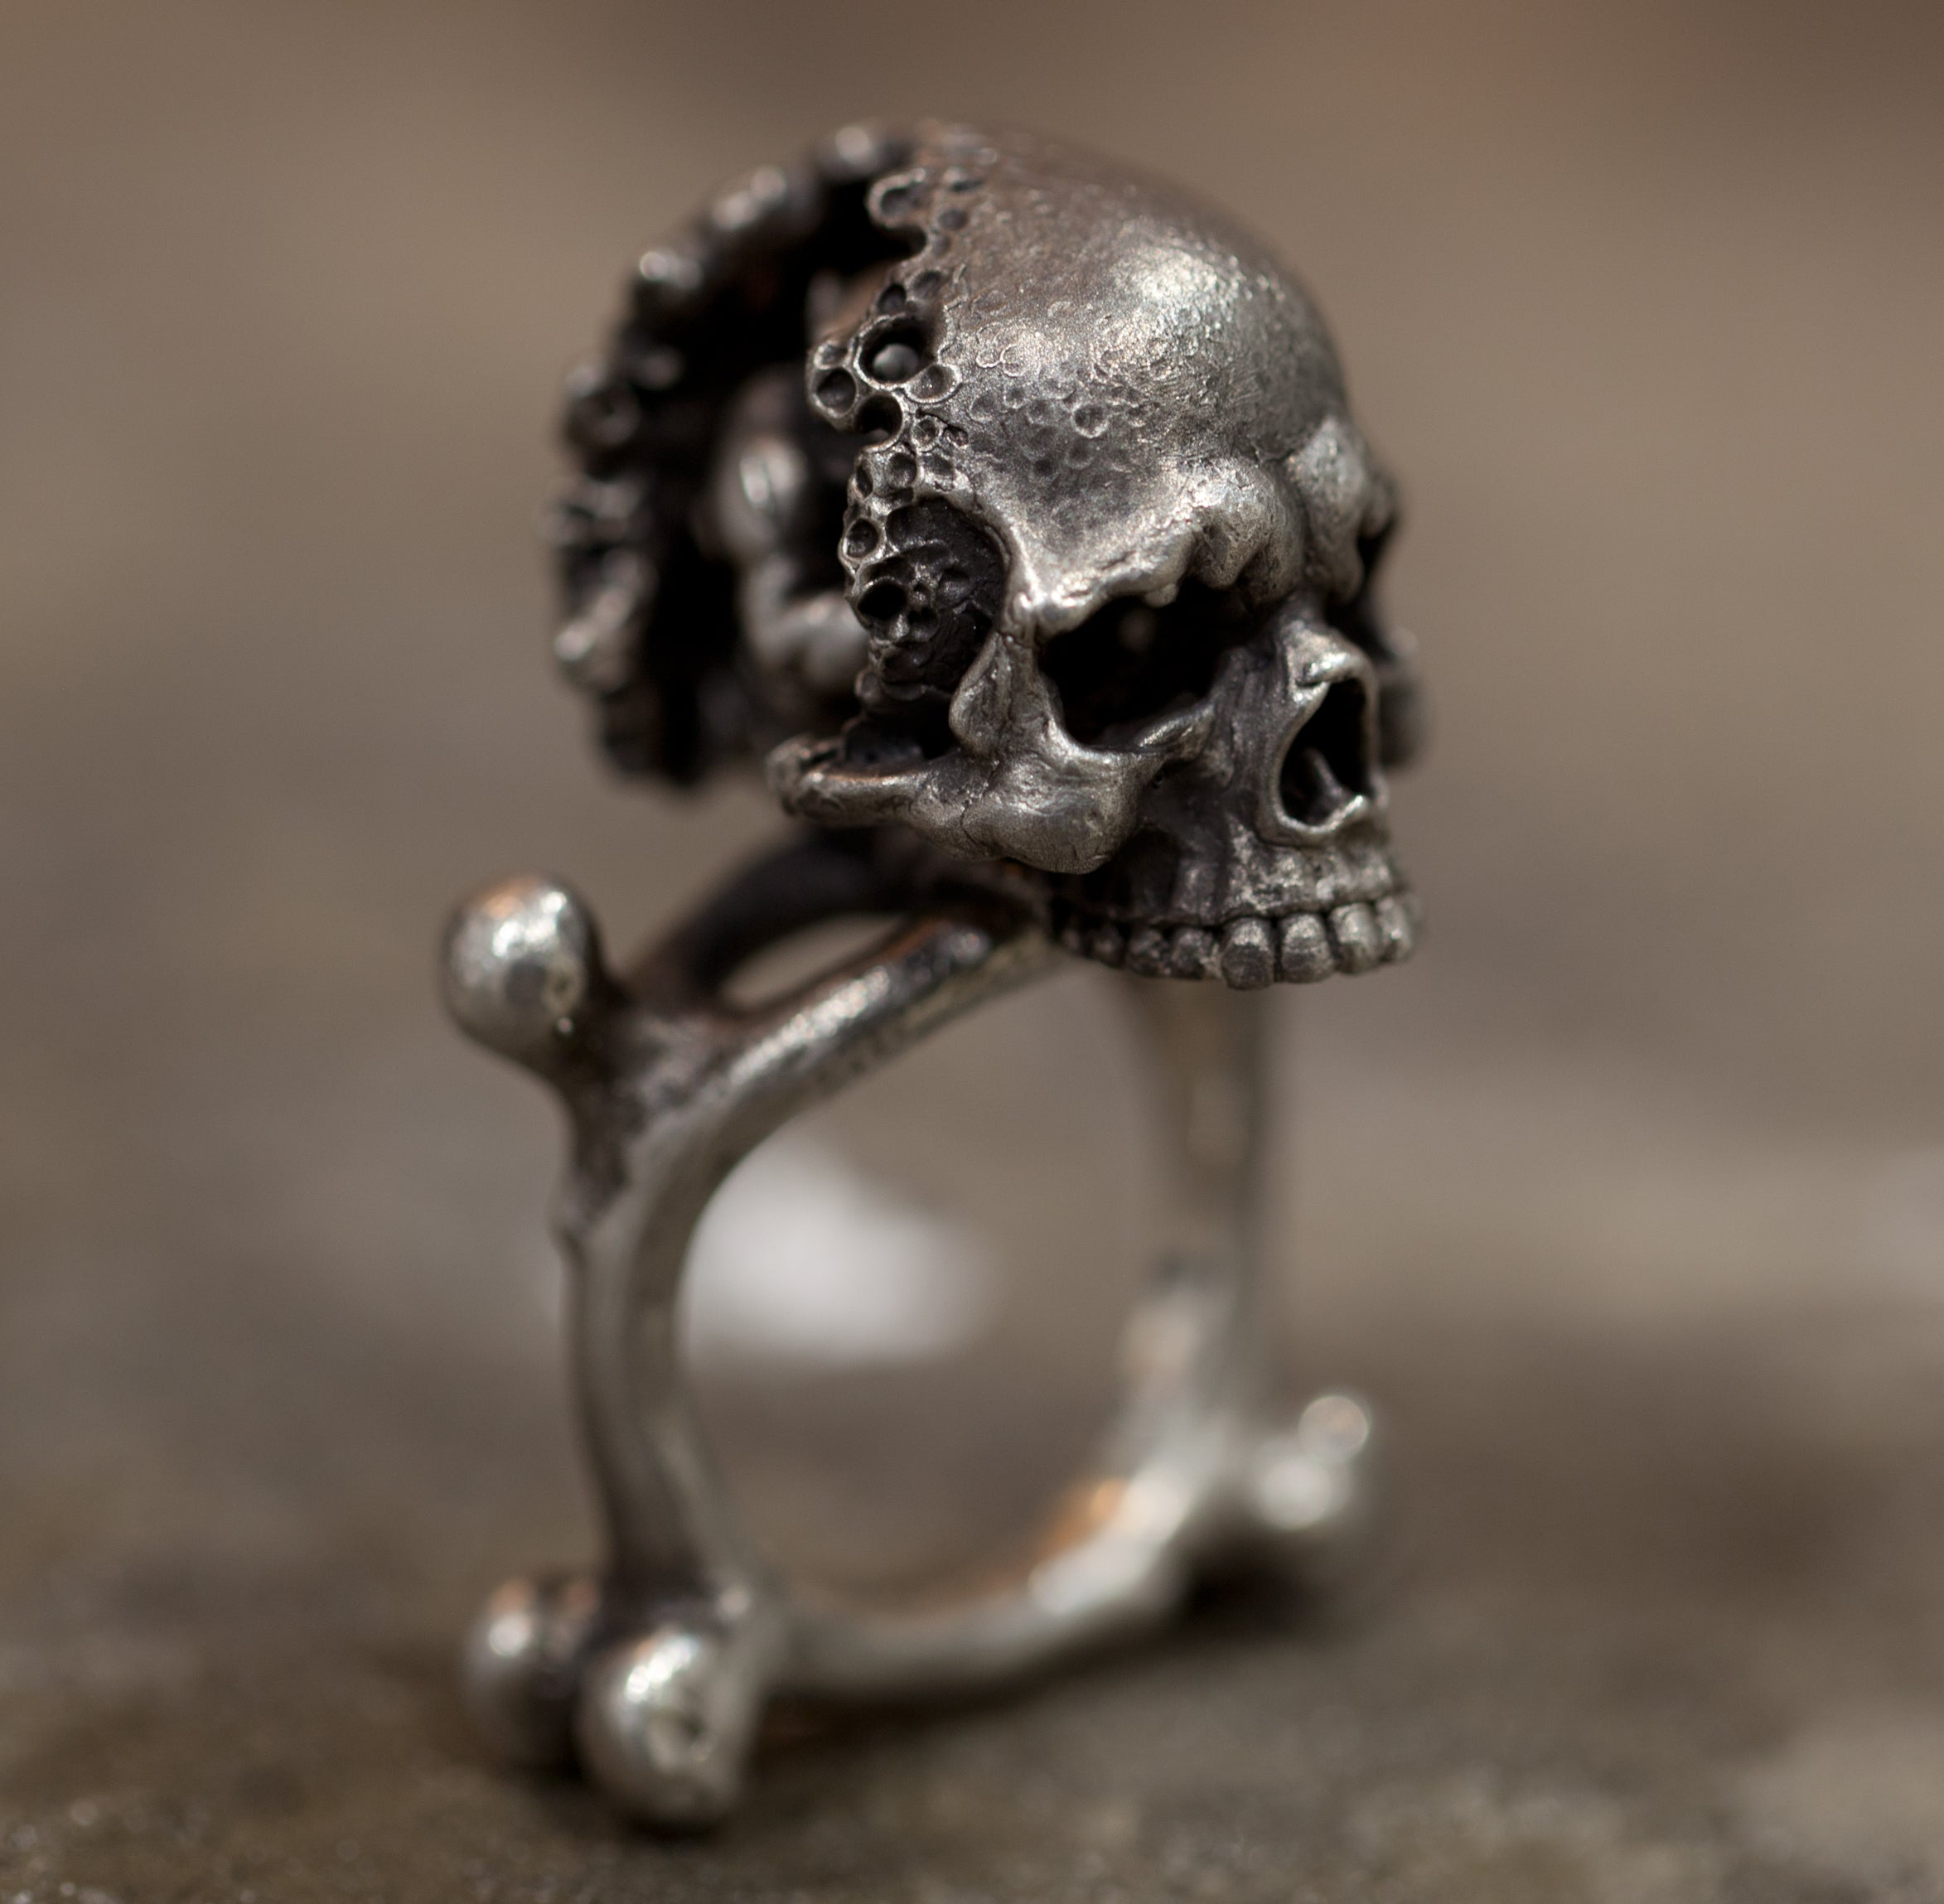 Hand sculpted eroded silver skull ring with concealed demon hidden inside. Handmade by Damian Regan